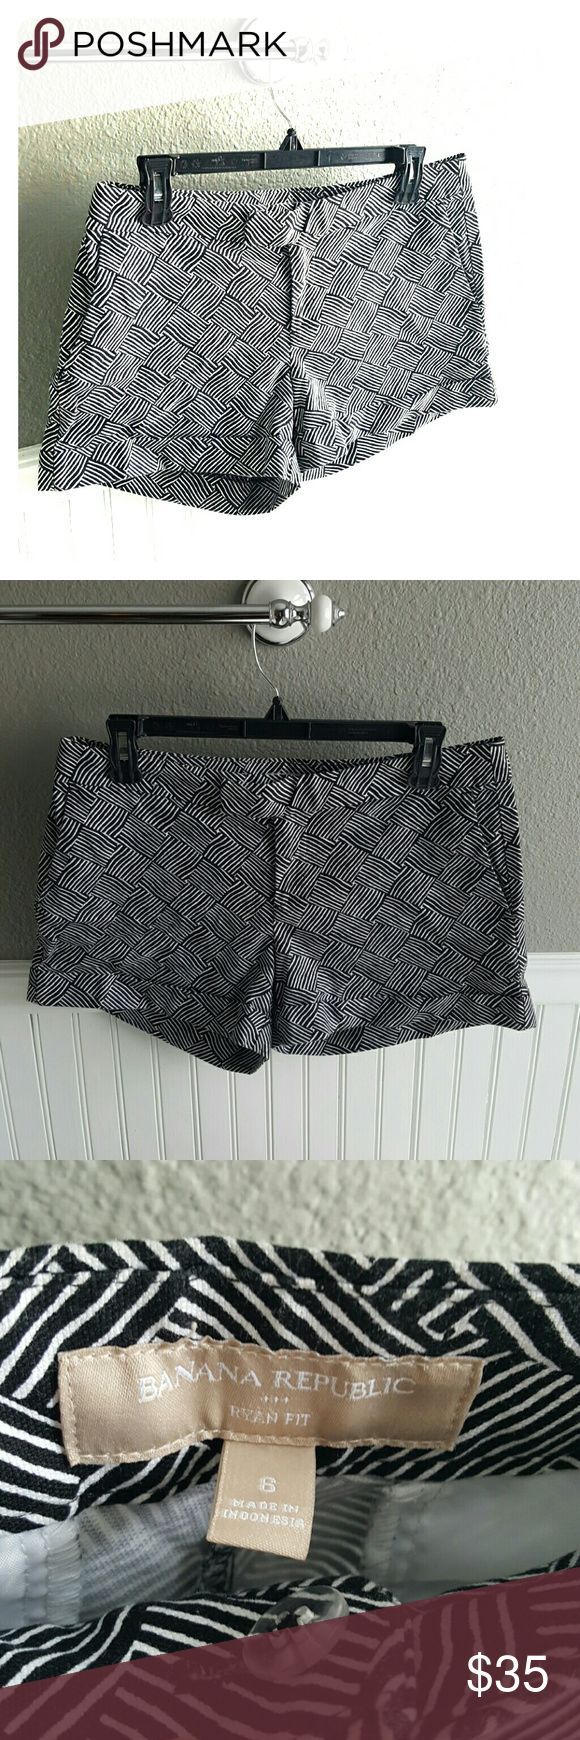 """Great Condition Banana Republic Shorts! Selling a Pair of Great Condition Banana Republic Shorts! These have a great pattern, versatile color, and are the """"Ryan fit."""" size 6. Banana Republic Shorts"""